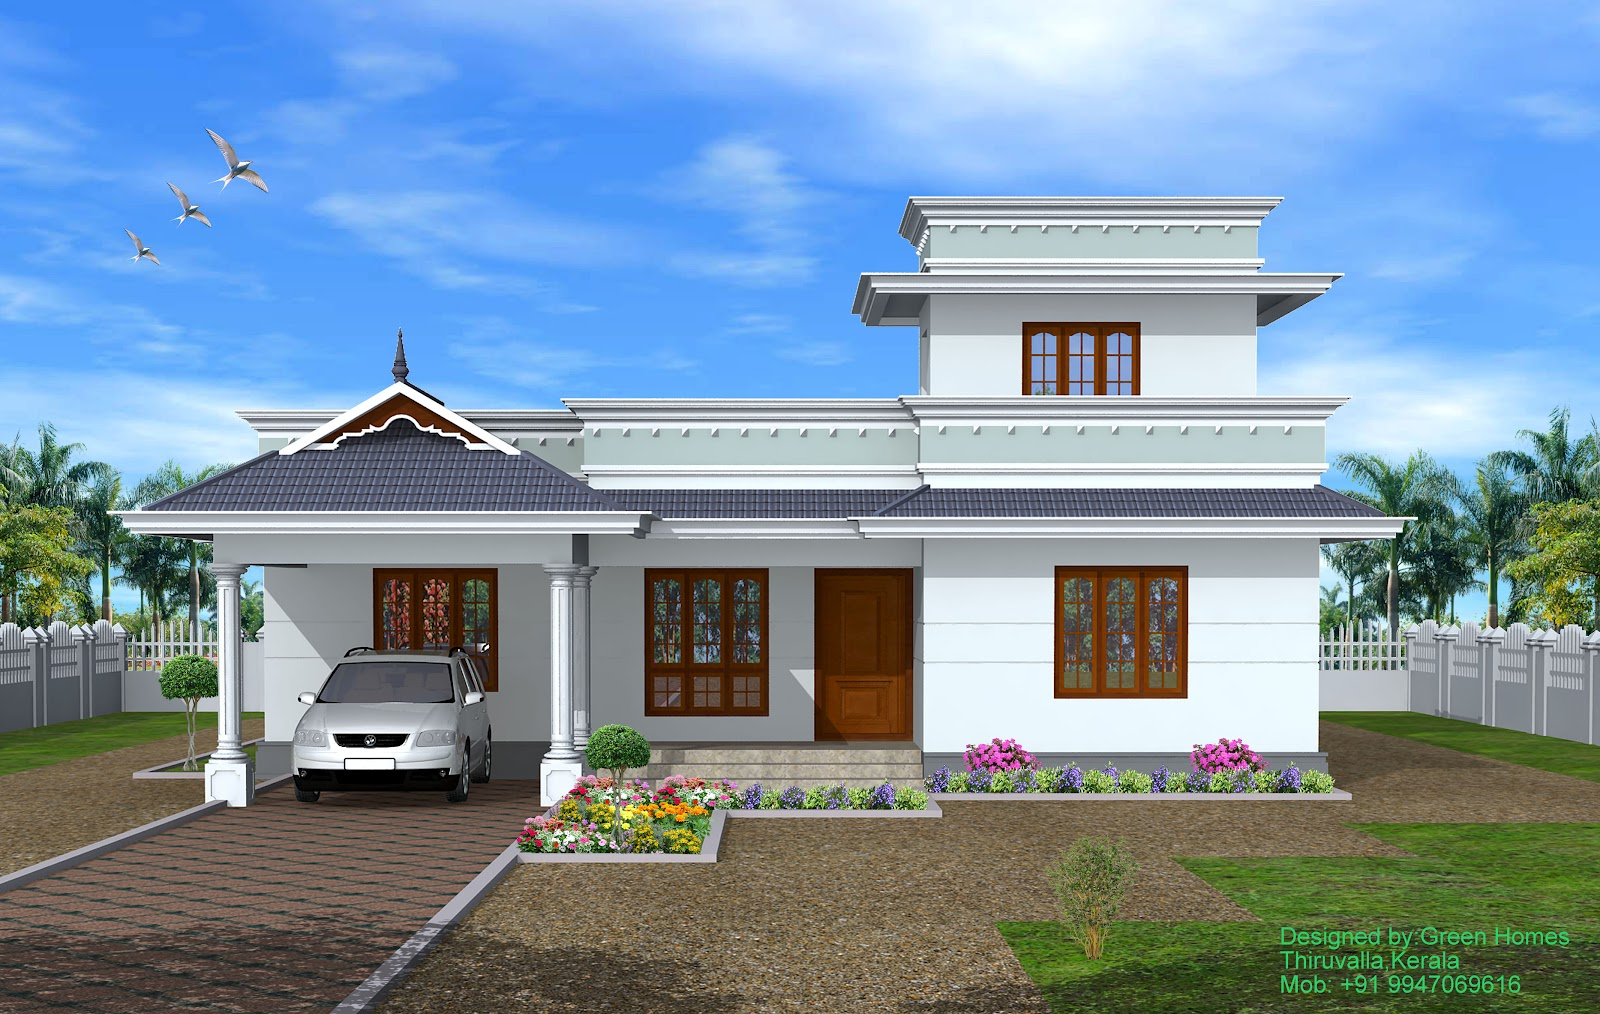 Green homes kerala 4 bhk single storey house 1950 for Kerala style single storey house plans